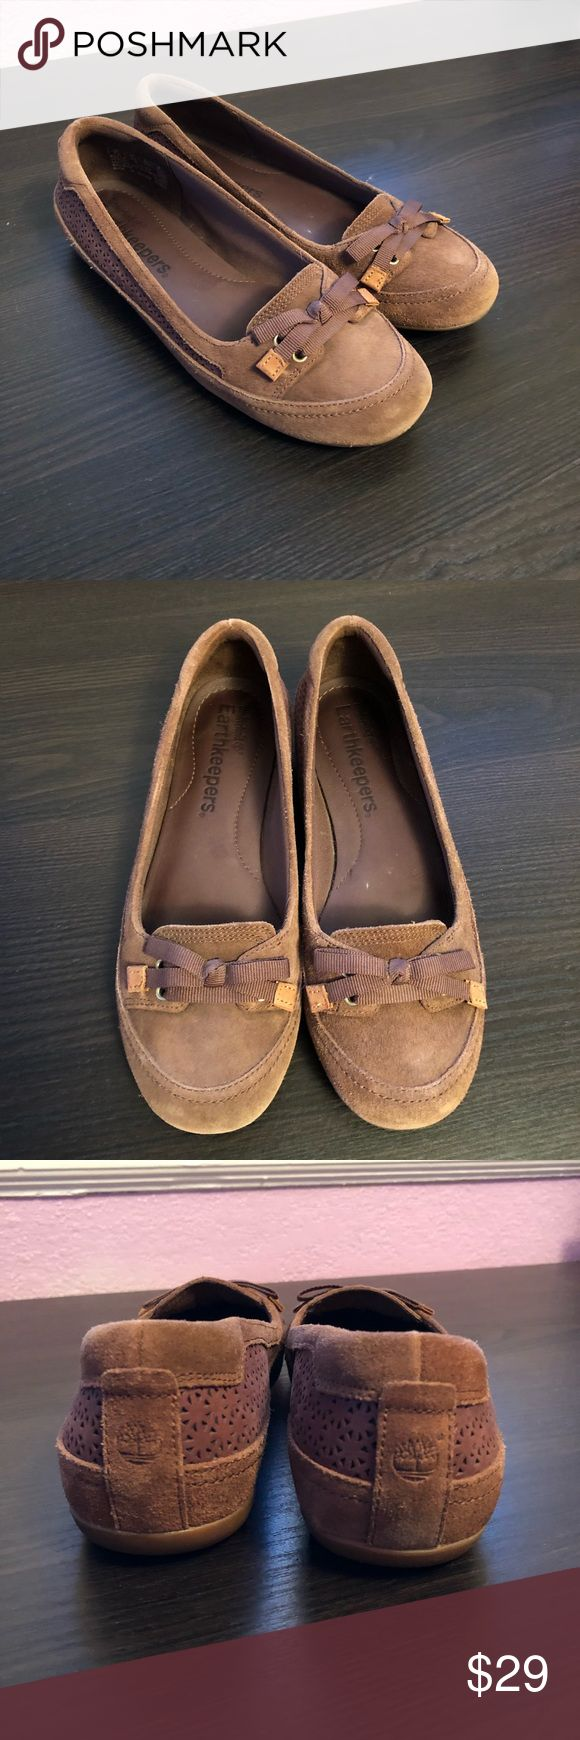 Timberland Earthkeepers Falmouth Suede Shoes Timberland Earthkeepers Falmouth  Womens Slip Ons  Brown Ballerina Suede Shoes  8021R D17 No box. Good condition Timberland Shoes Flats & Loafers